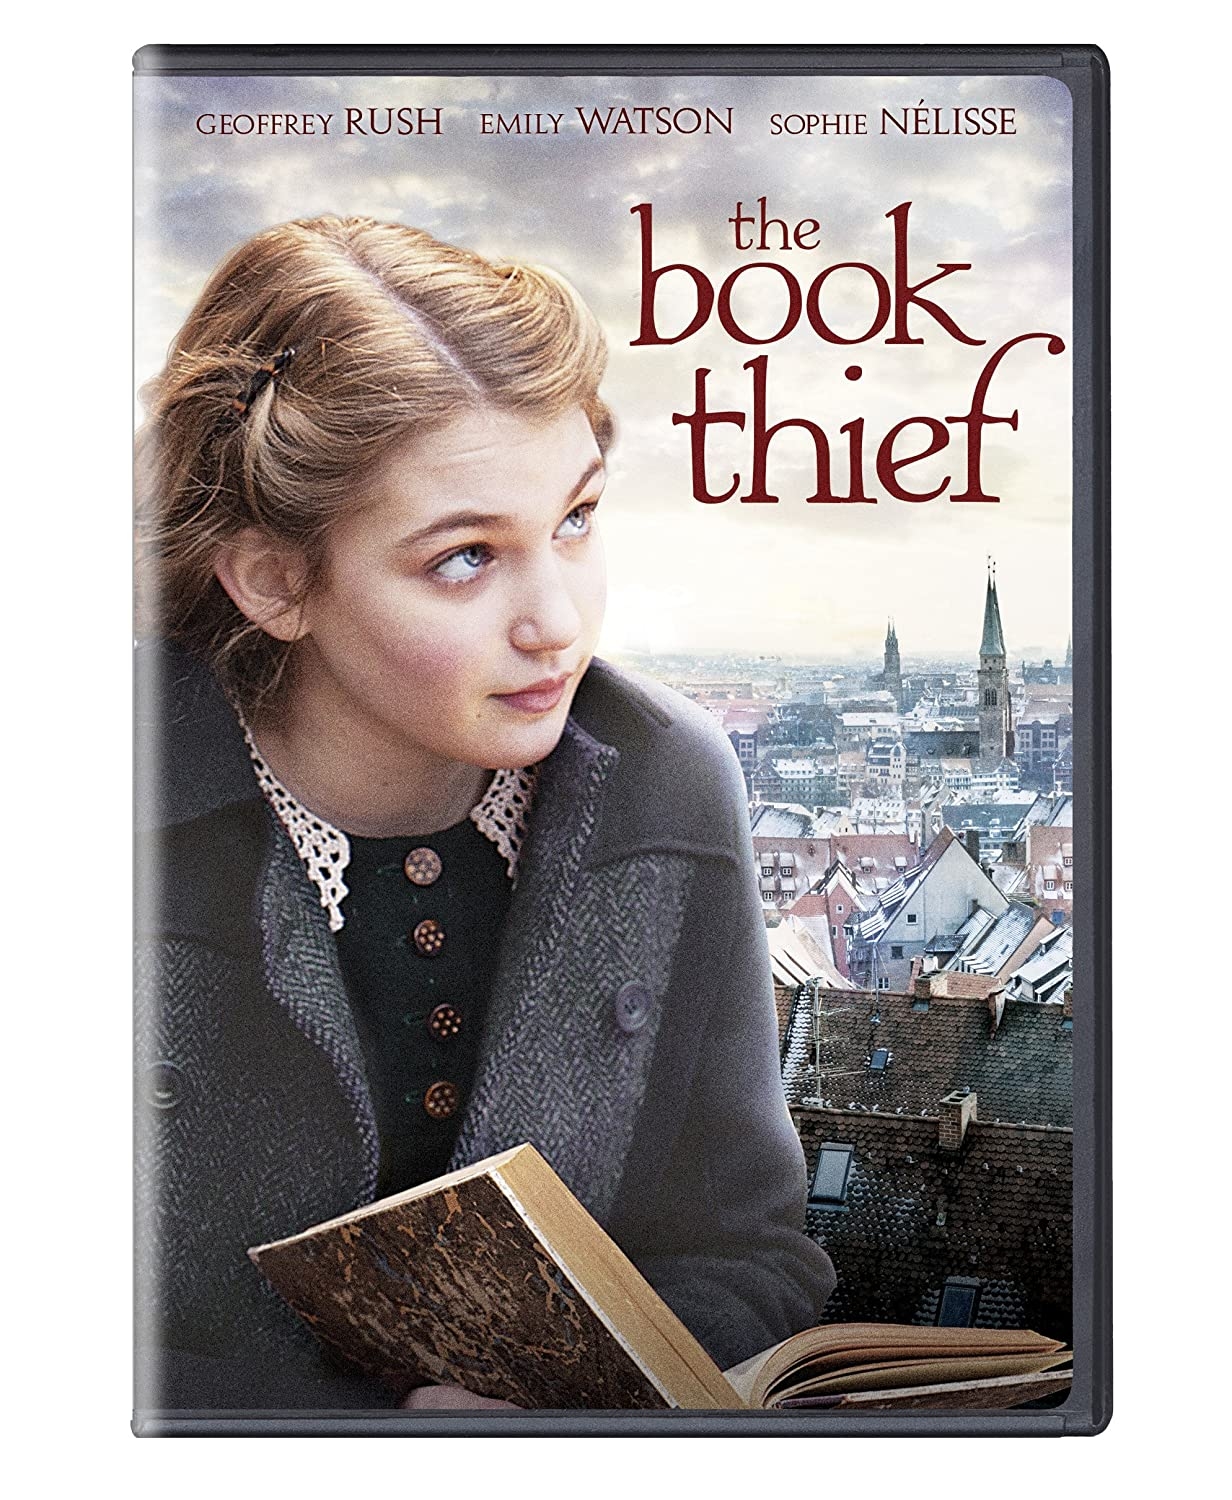 com the book thief sophie nelisse emily watson geoffrey  com the book thief sophie nelisse emily watson geoffrey rush brian percival movies tv